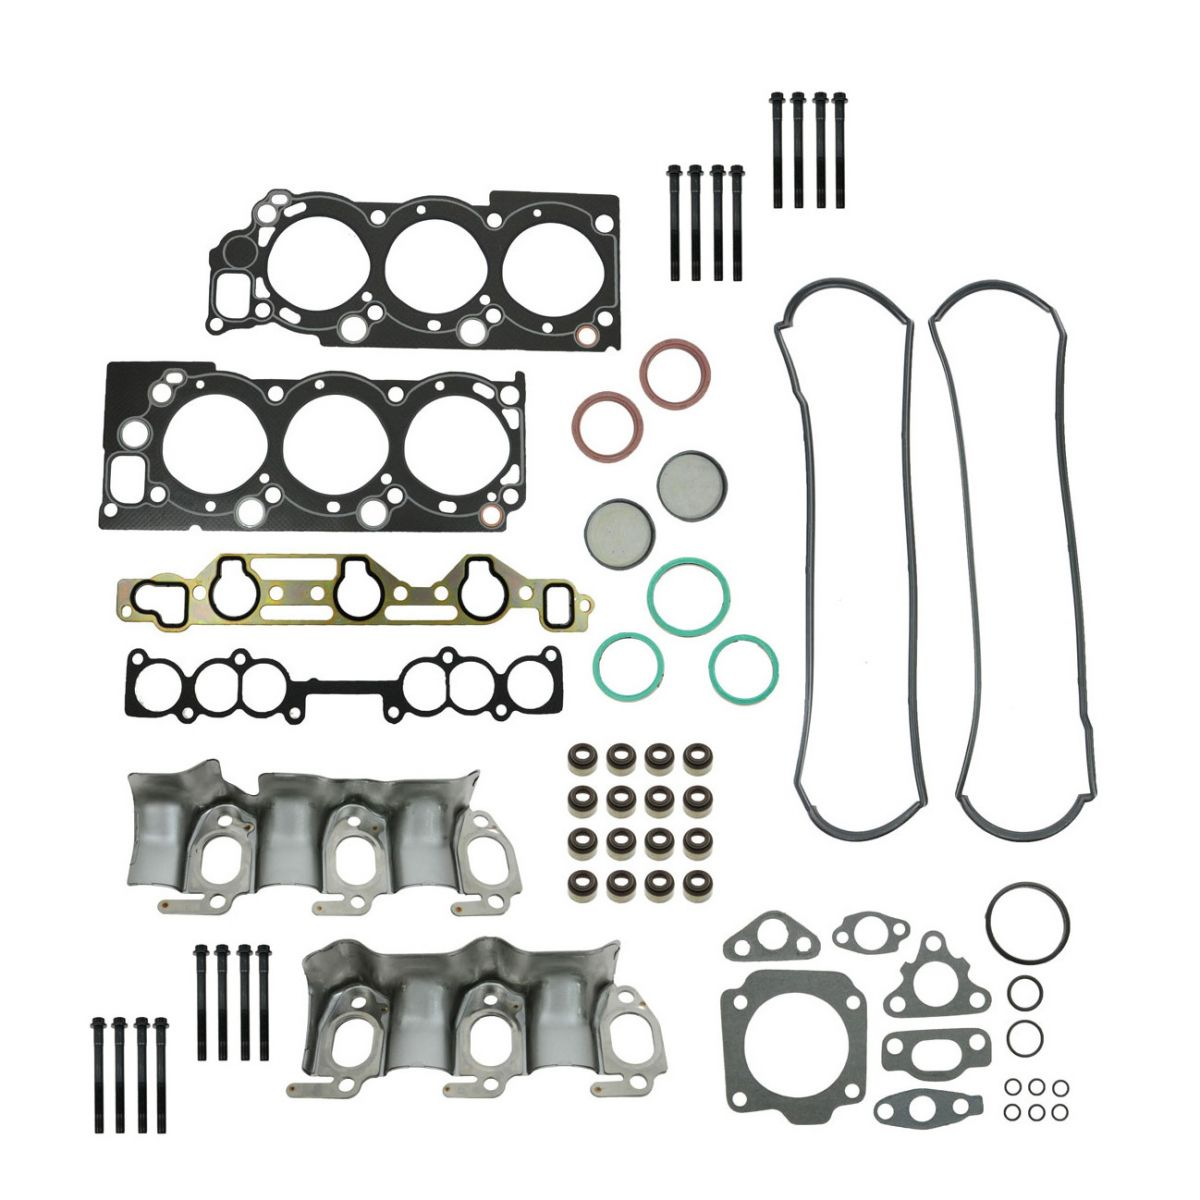 Cylinder Head Gasket Bolts kit Replacement For TOYOTA PICKUP 4RUNNER T100 3.0L 1988-1995